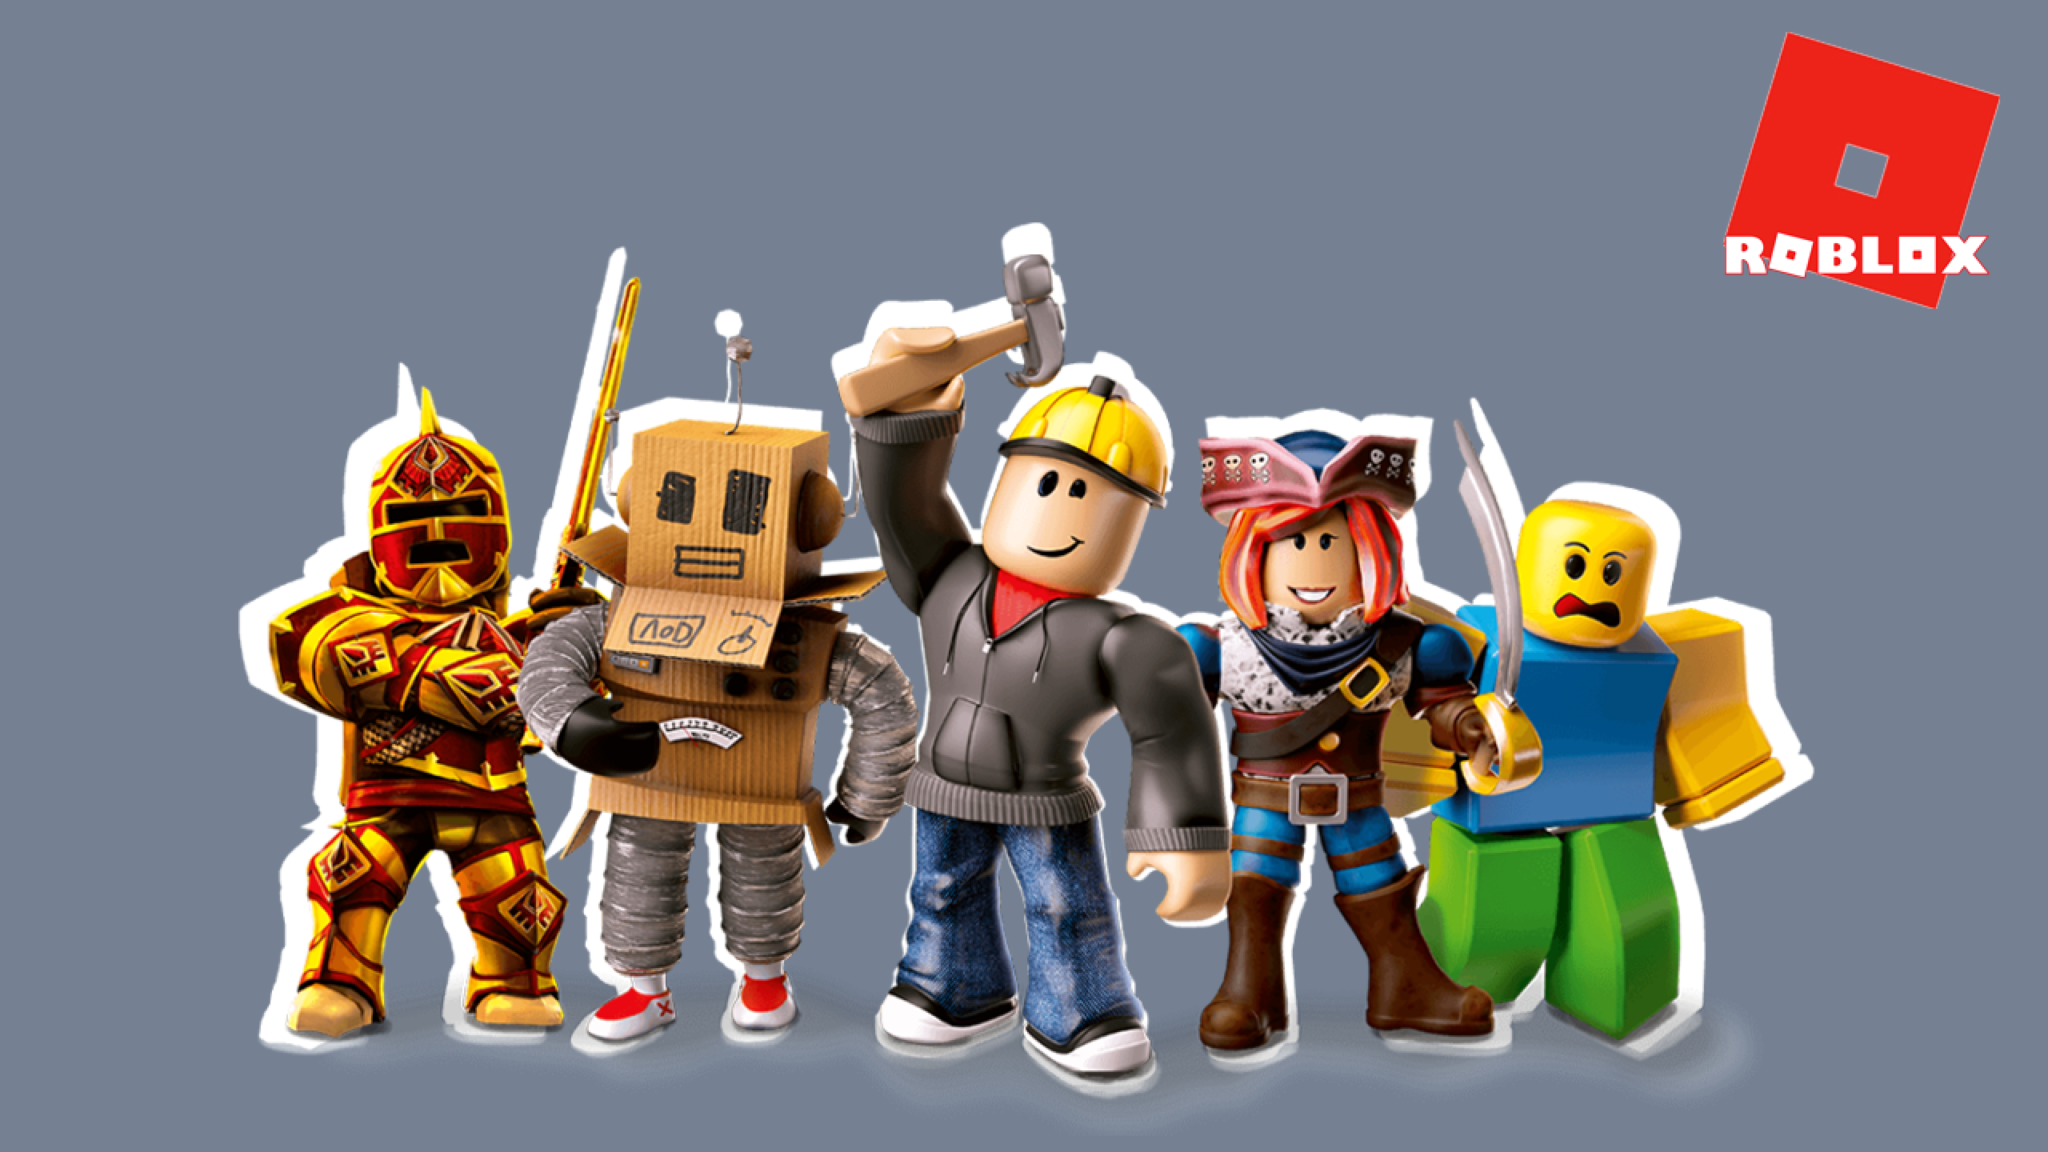 ROBLOX IPO is not your typical IPO